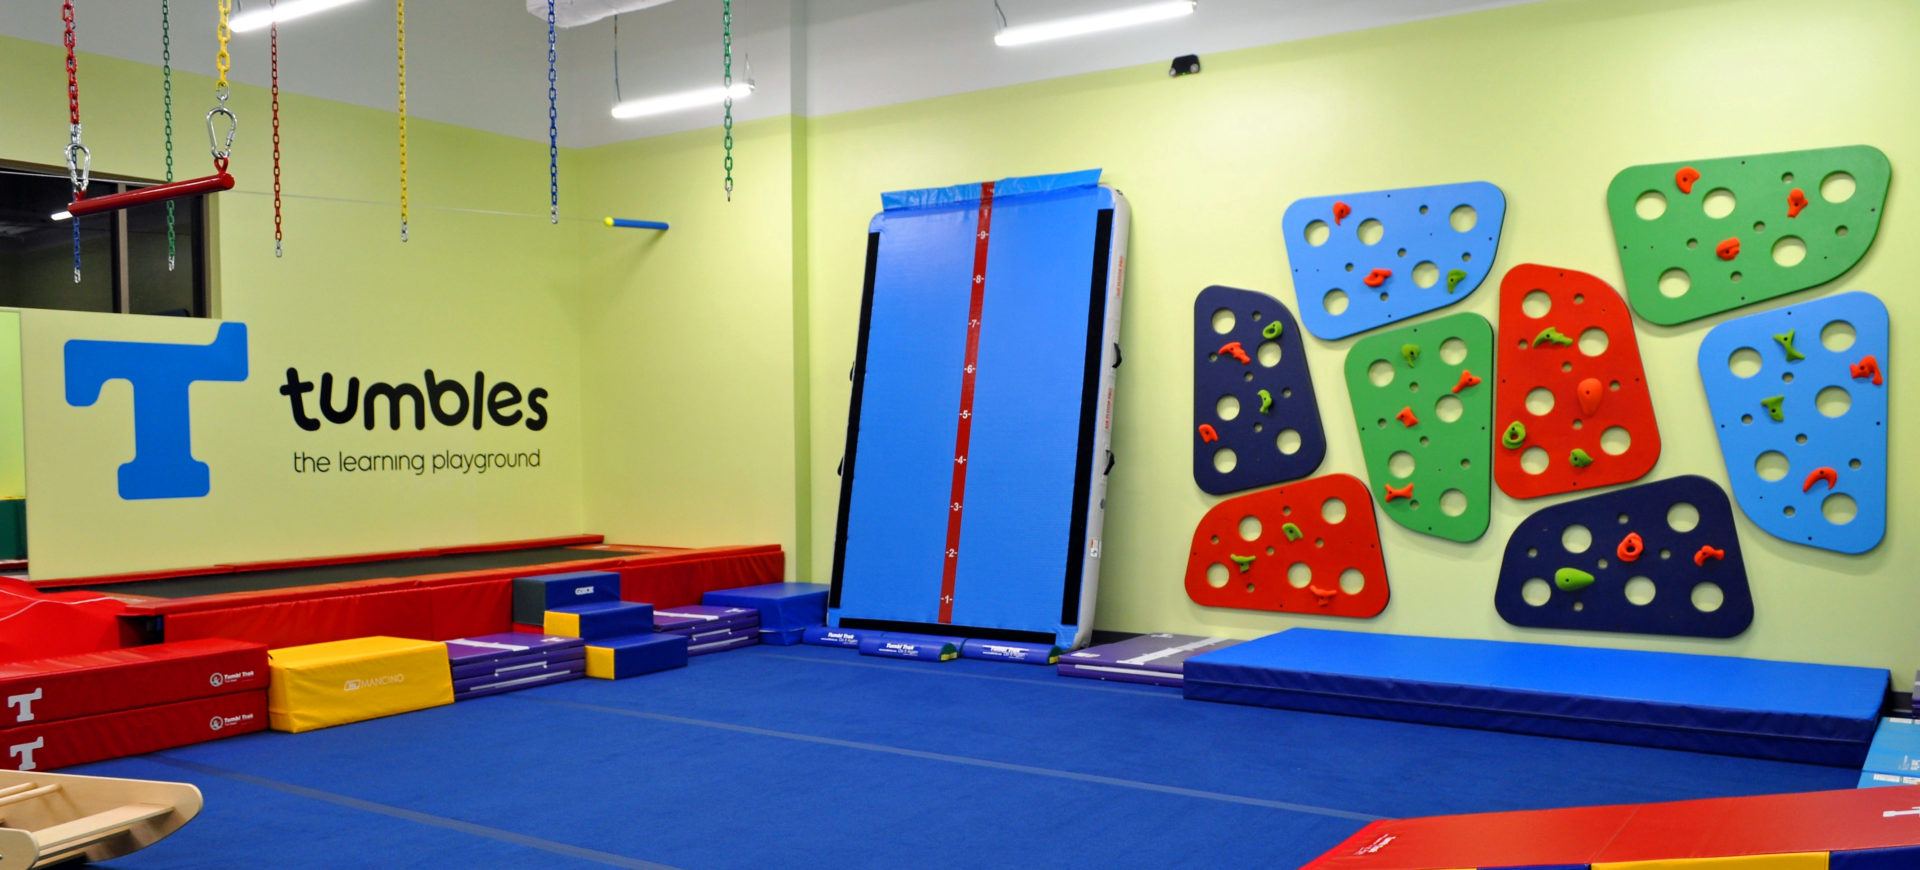 Indoor playground at Tumbles